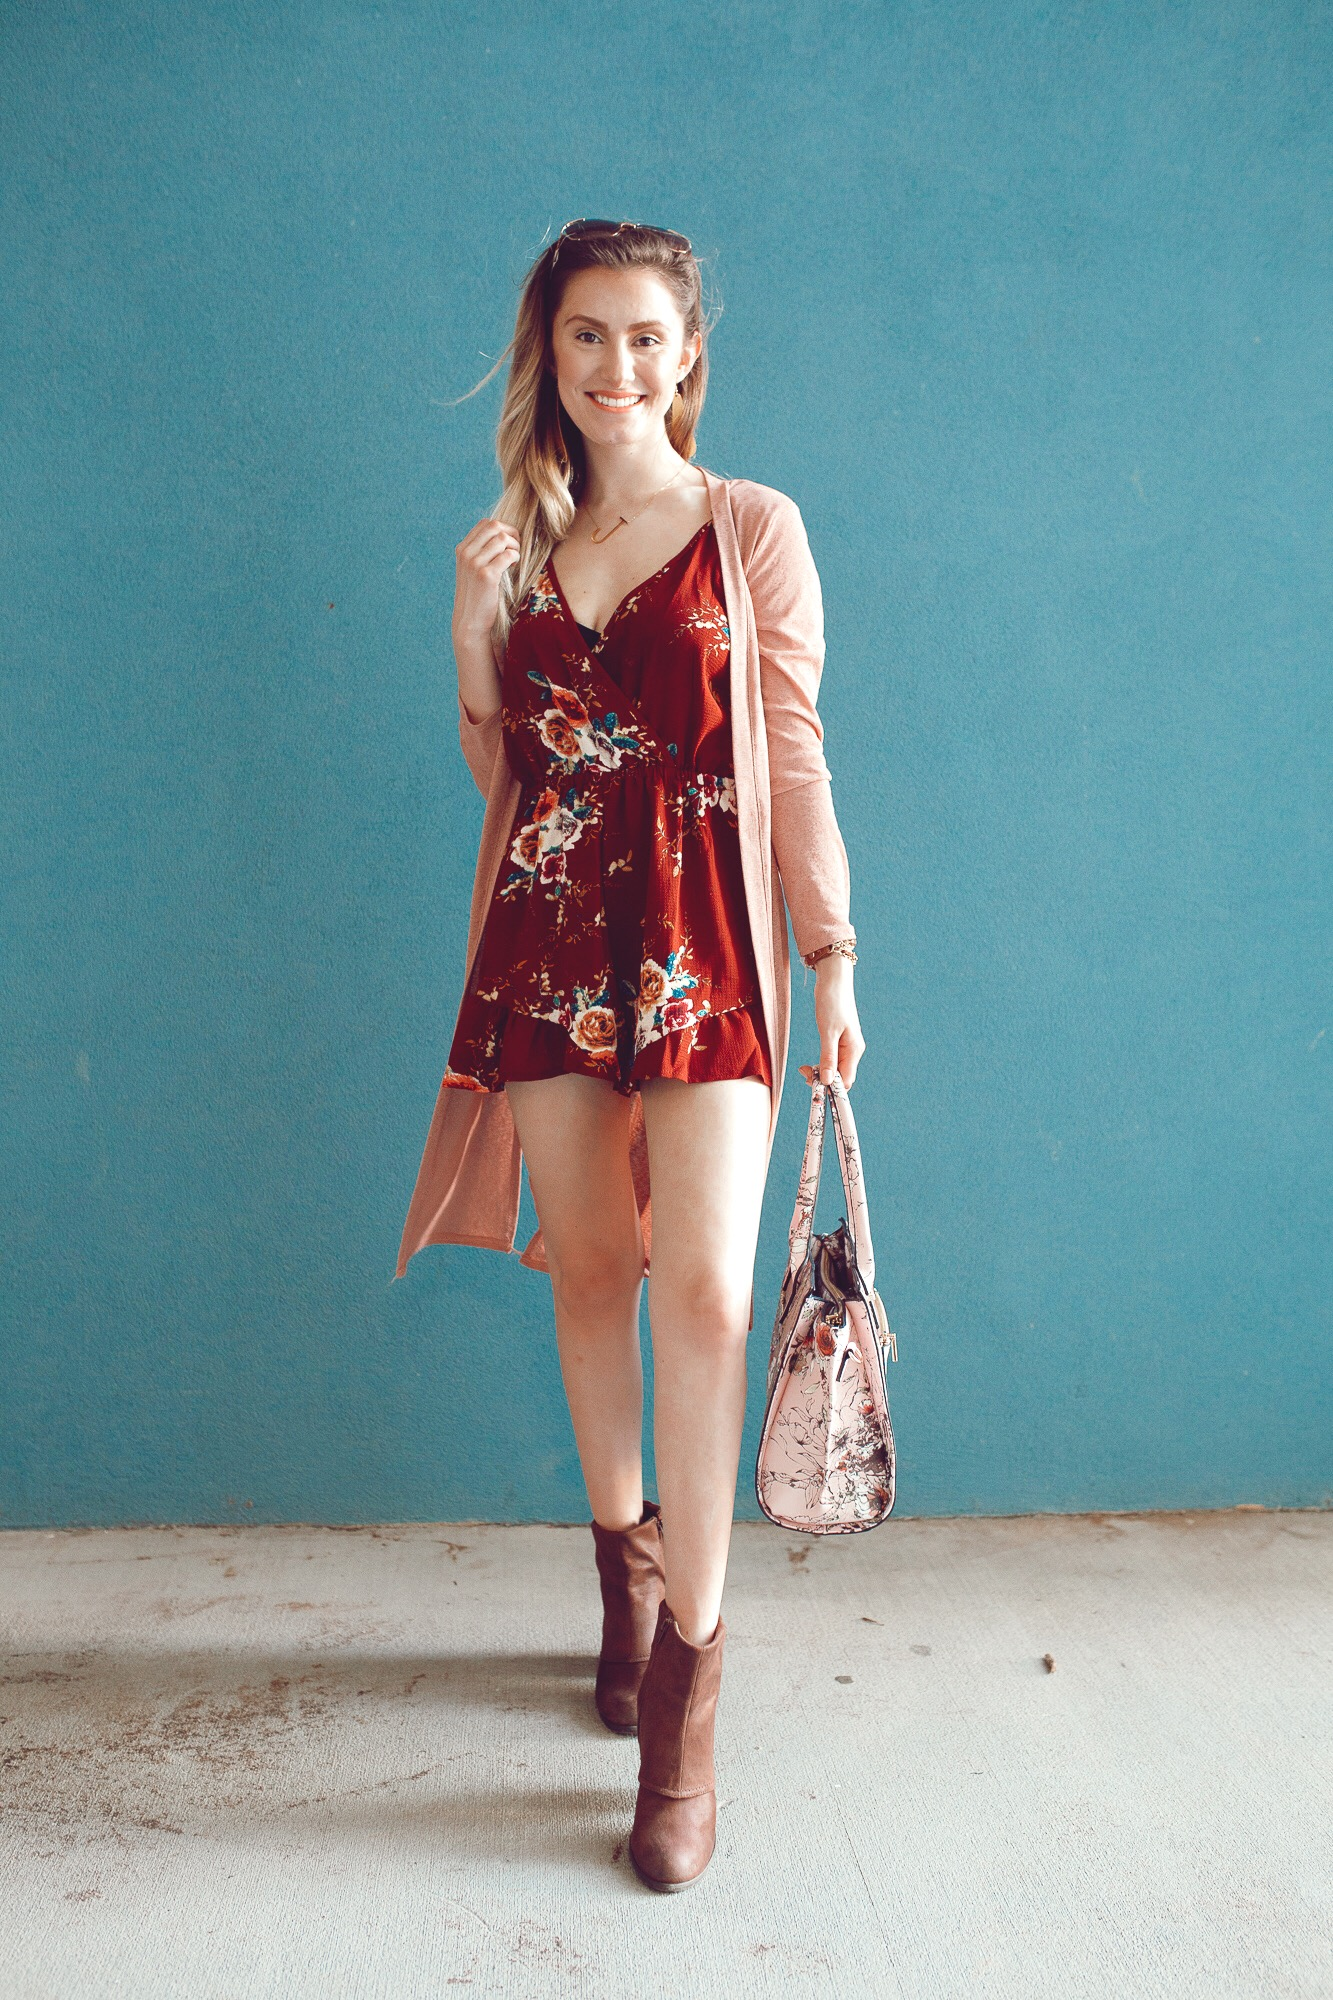 db846db9ba96 Summer to fall transition outfit by popular North Carolina fashion blogger  Jessica Linn. Burgundy floral